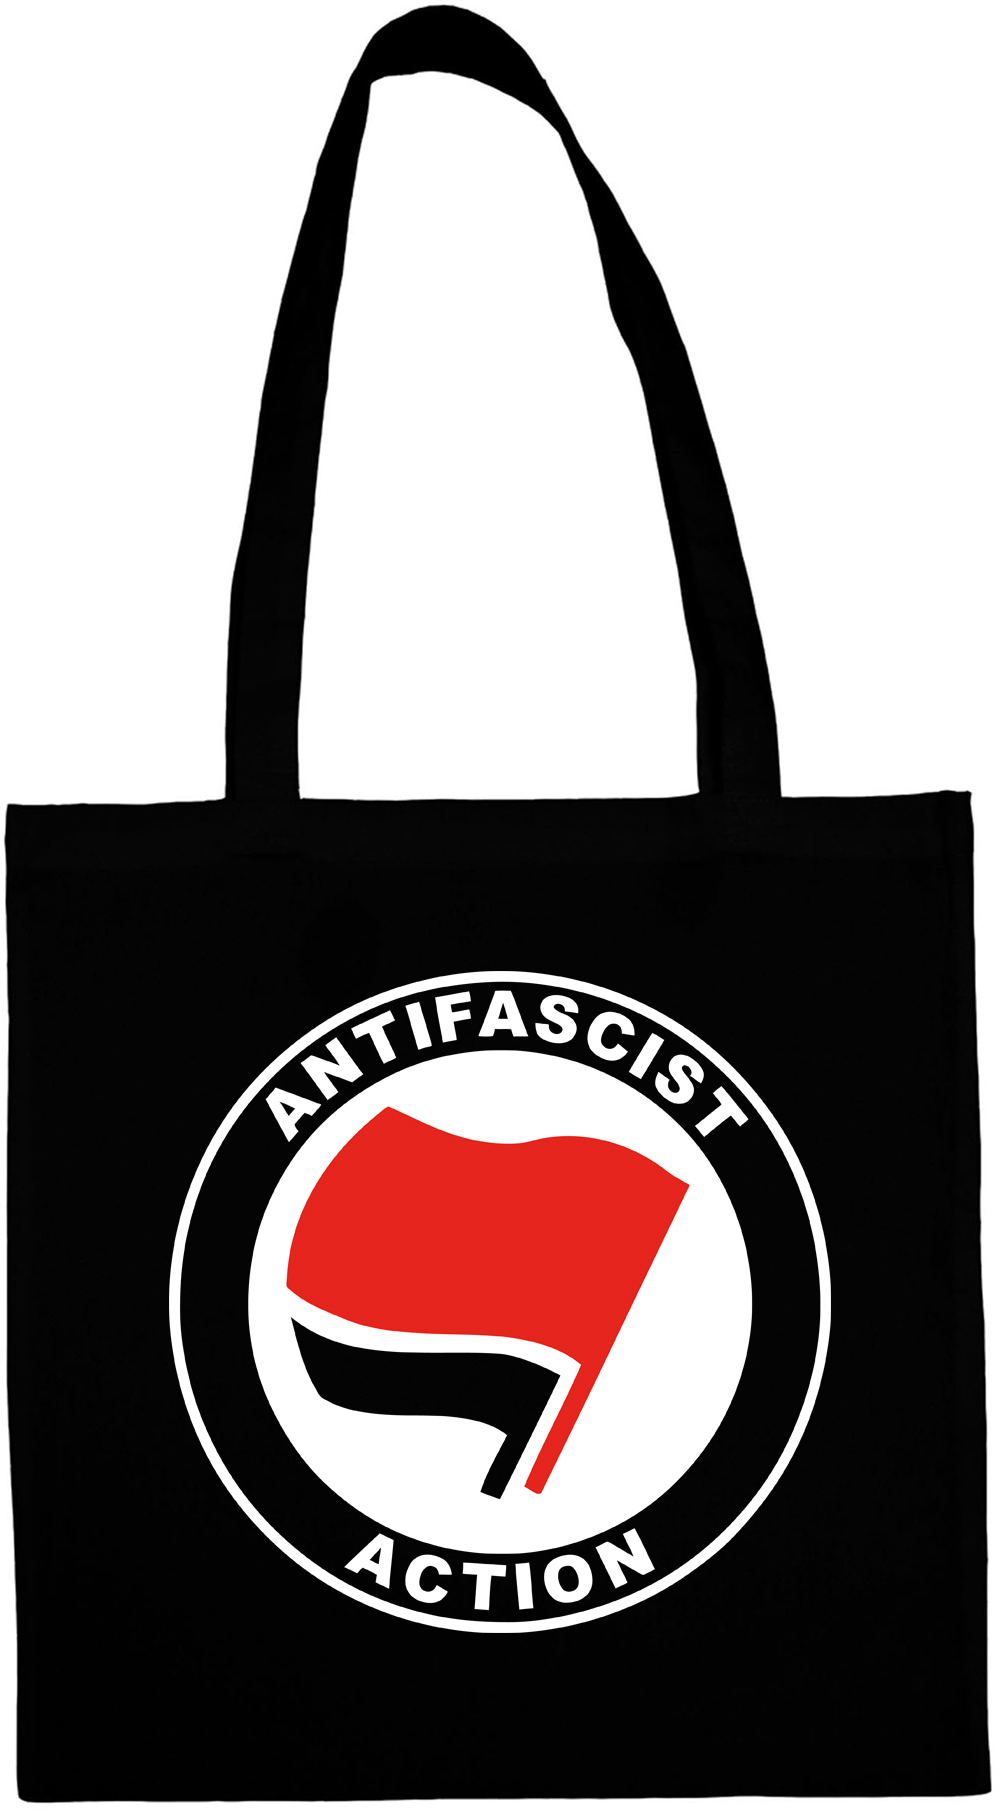 ANTIFASCIST ACTION